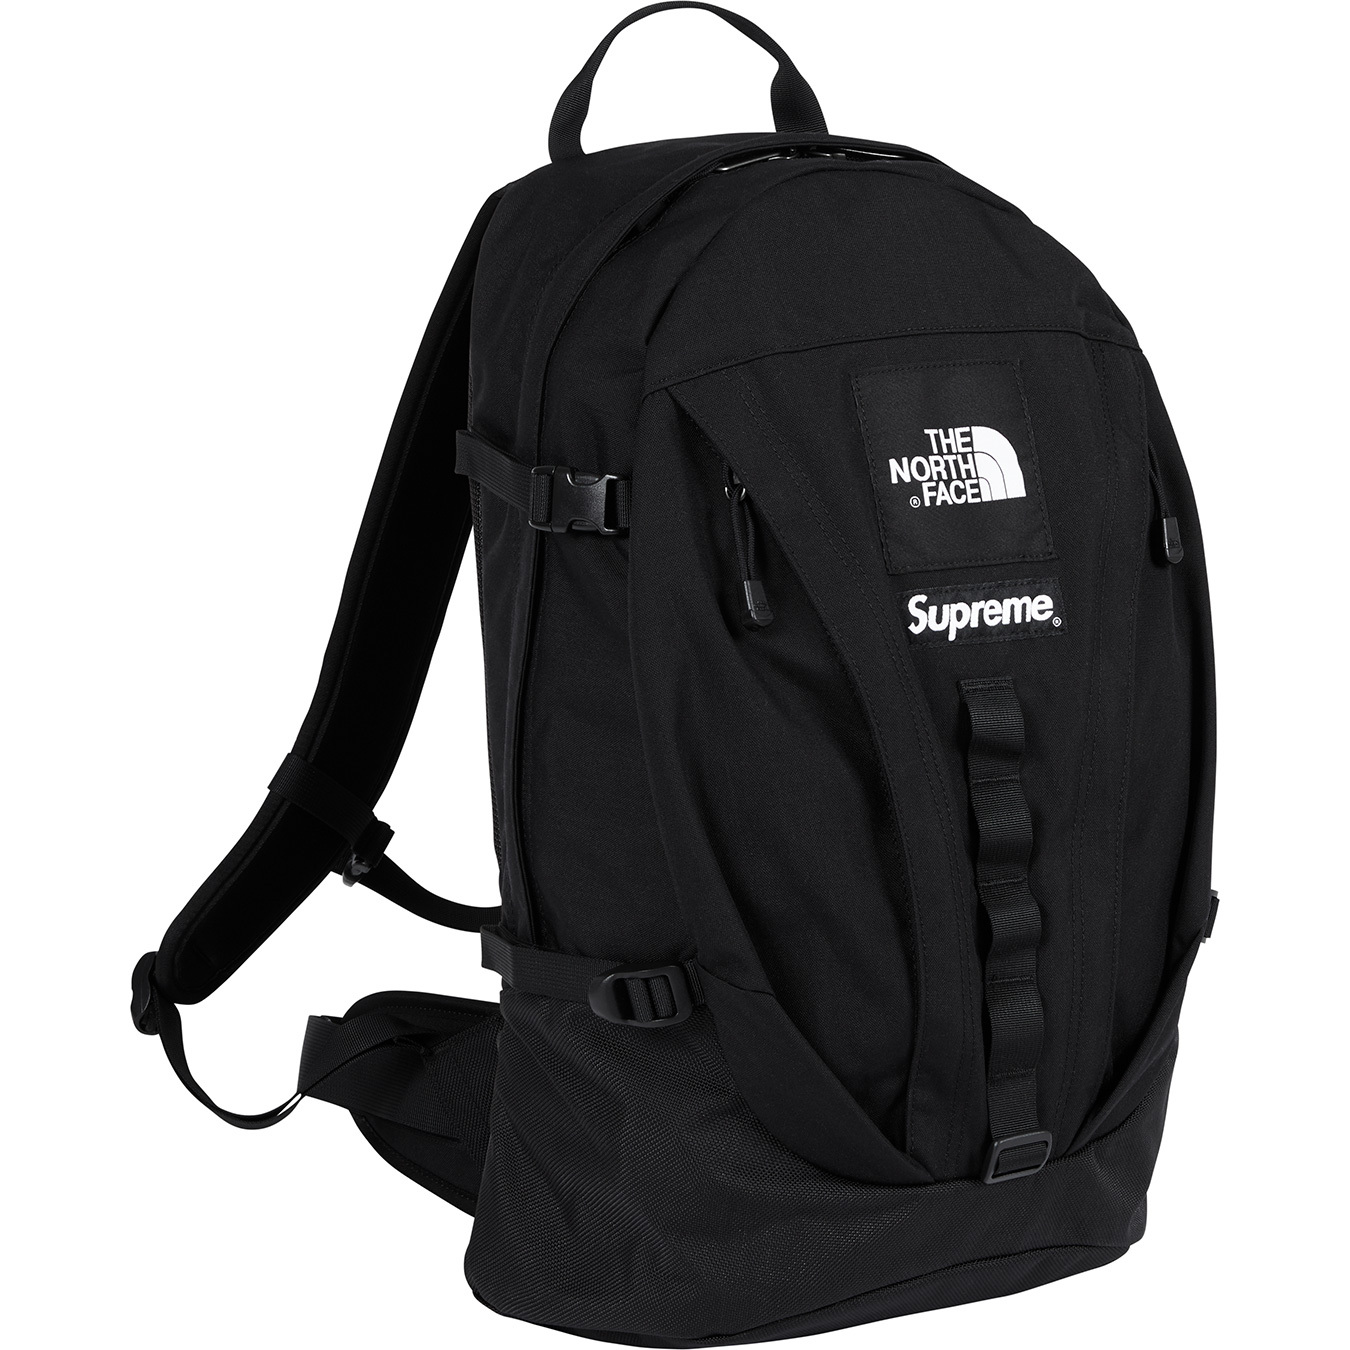 supreme-the-north-face-2018aw-2nd-delivery-release-20181201-week15-expedition-backpack